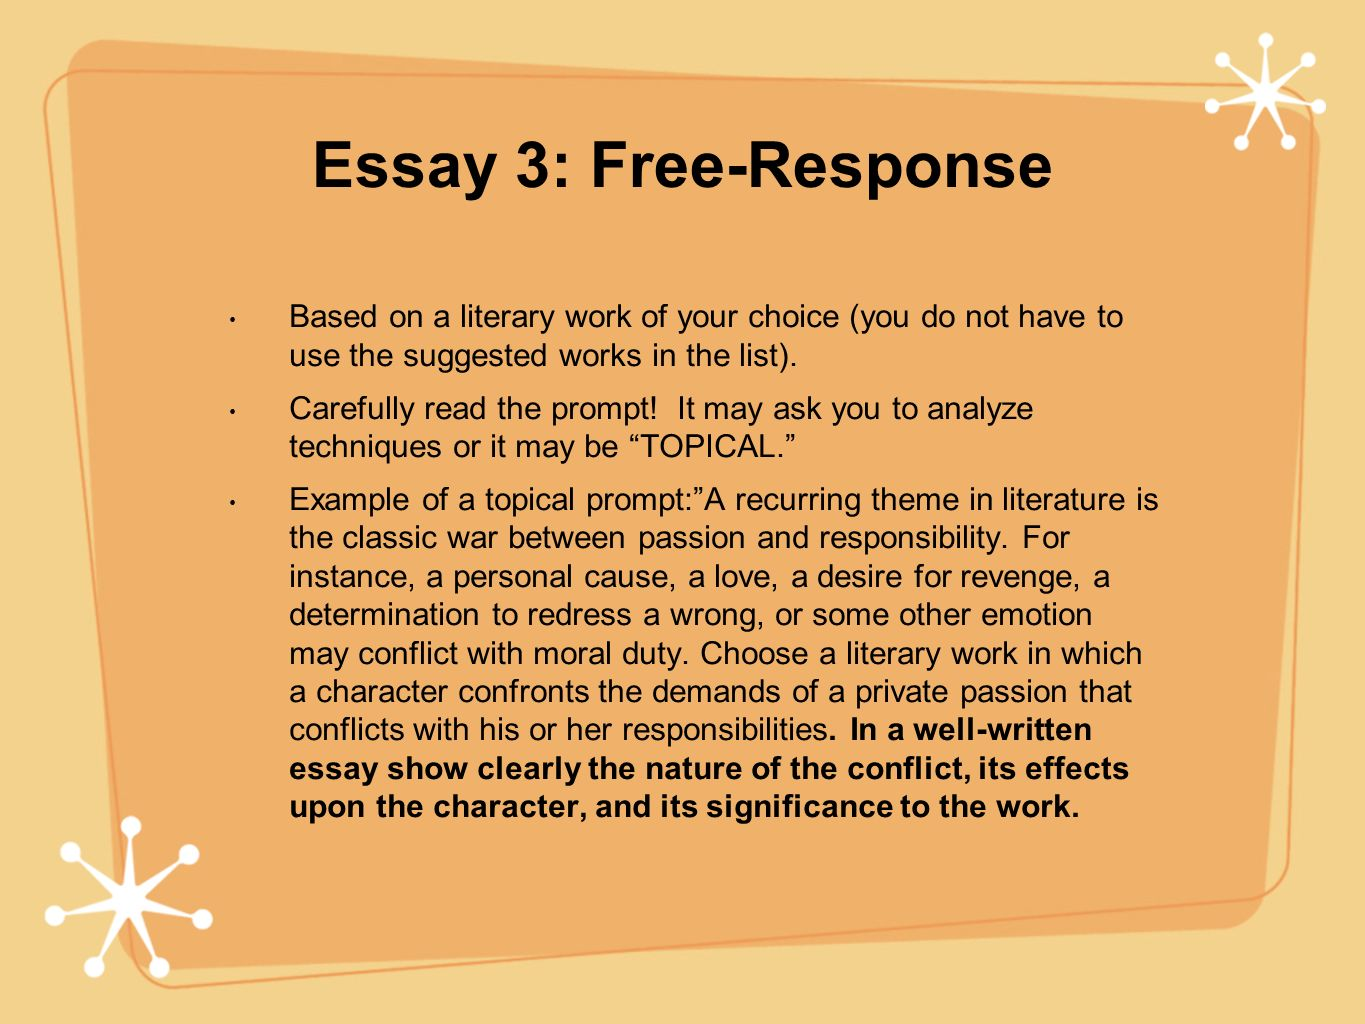 Essay Writing Examples For High School A Guide To Buying Term Papers Online Argumentative Essay Thesis also Business Law Essays How To Buy A Good College Term Paper Online Public Health Essays